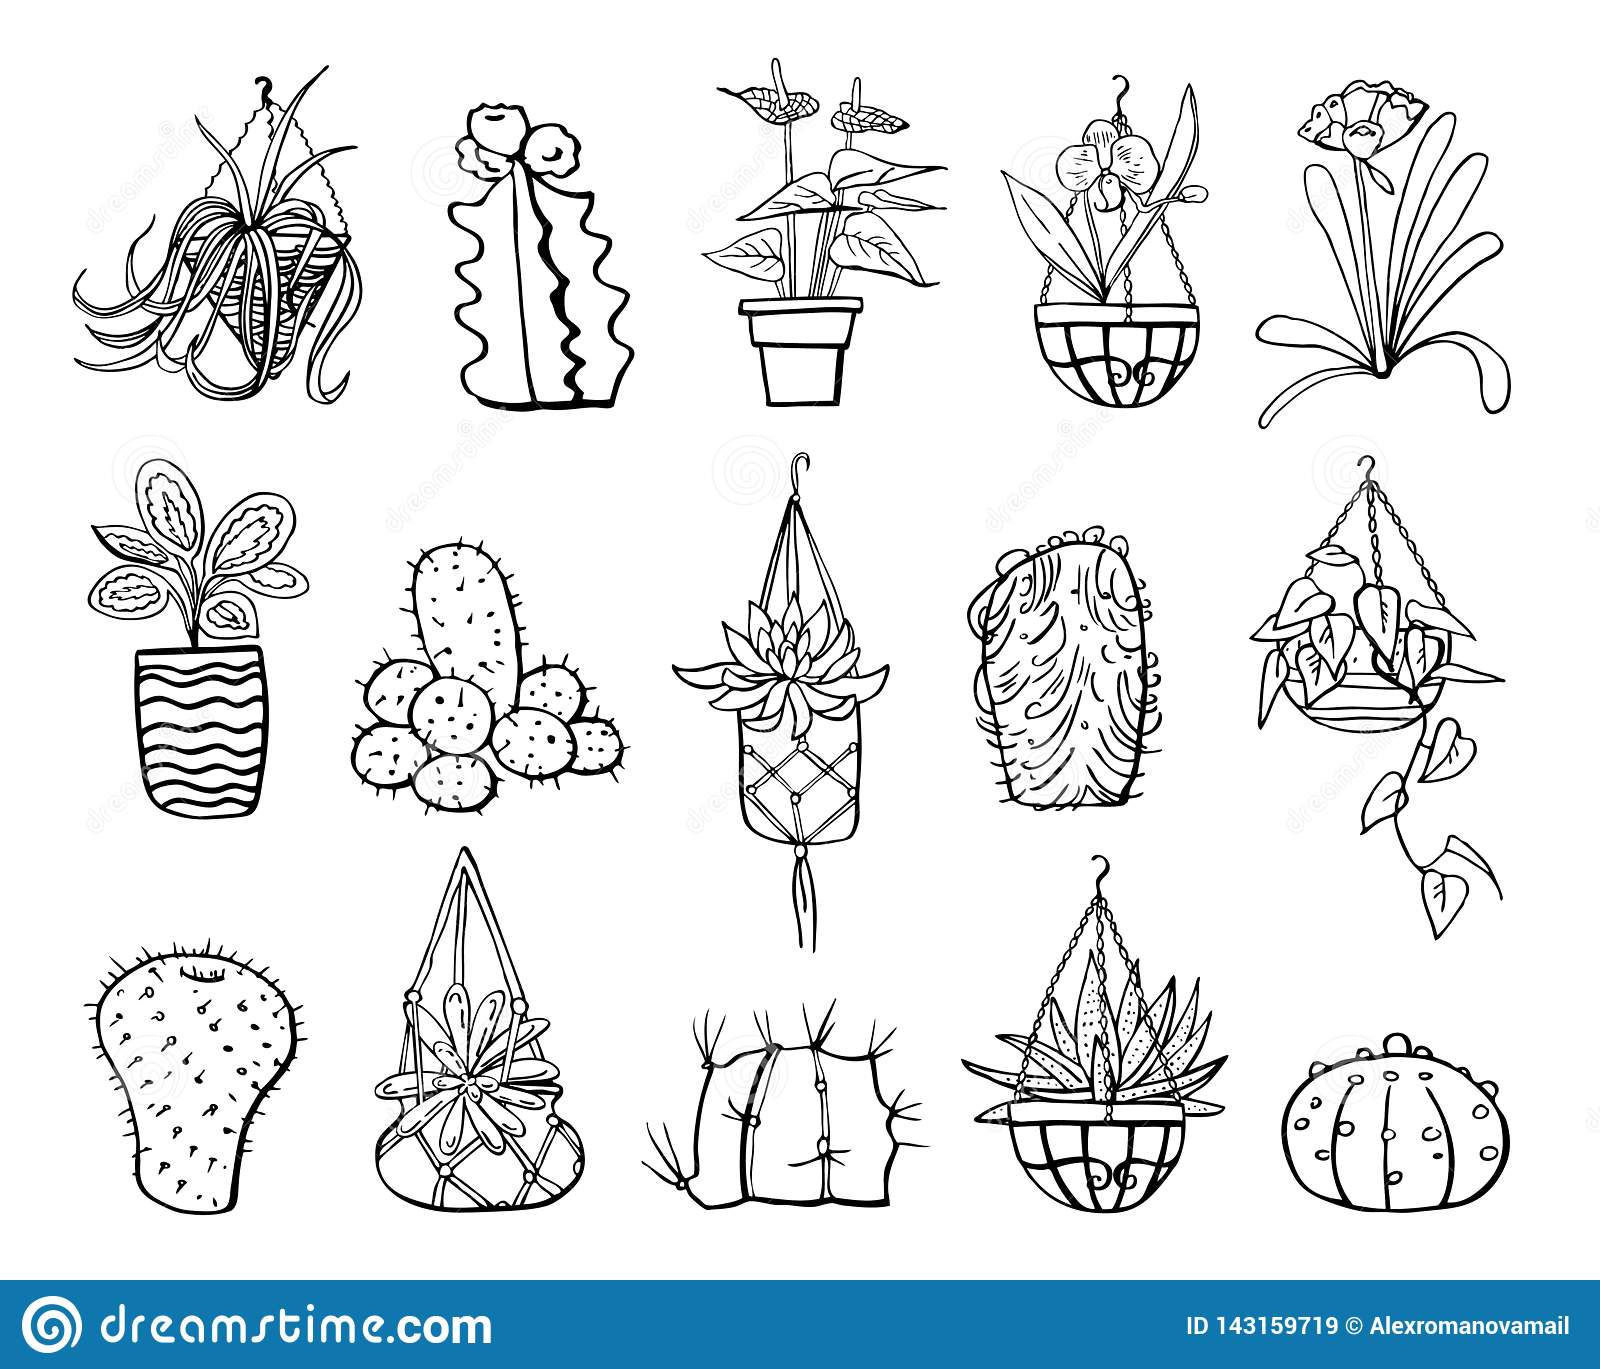 Houseplants Cactuses And Succulents In Hanging Flowerpots And Pots Vector Hand Drawn Outline Black And White Sketch Illustration Stock Vector Illustration Of Element Cacti 143159719